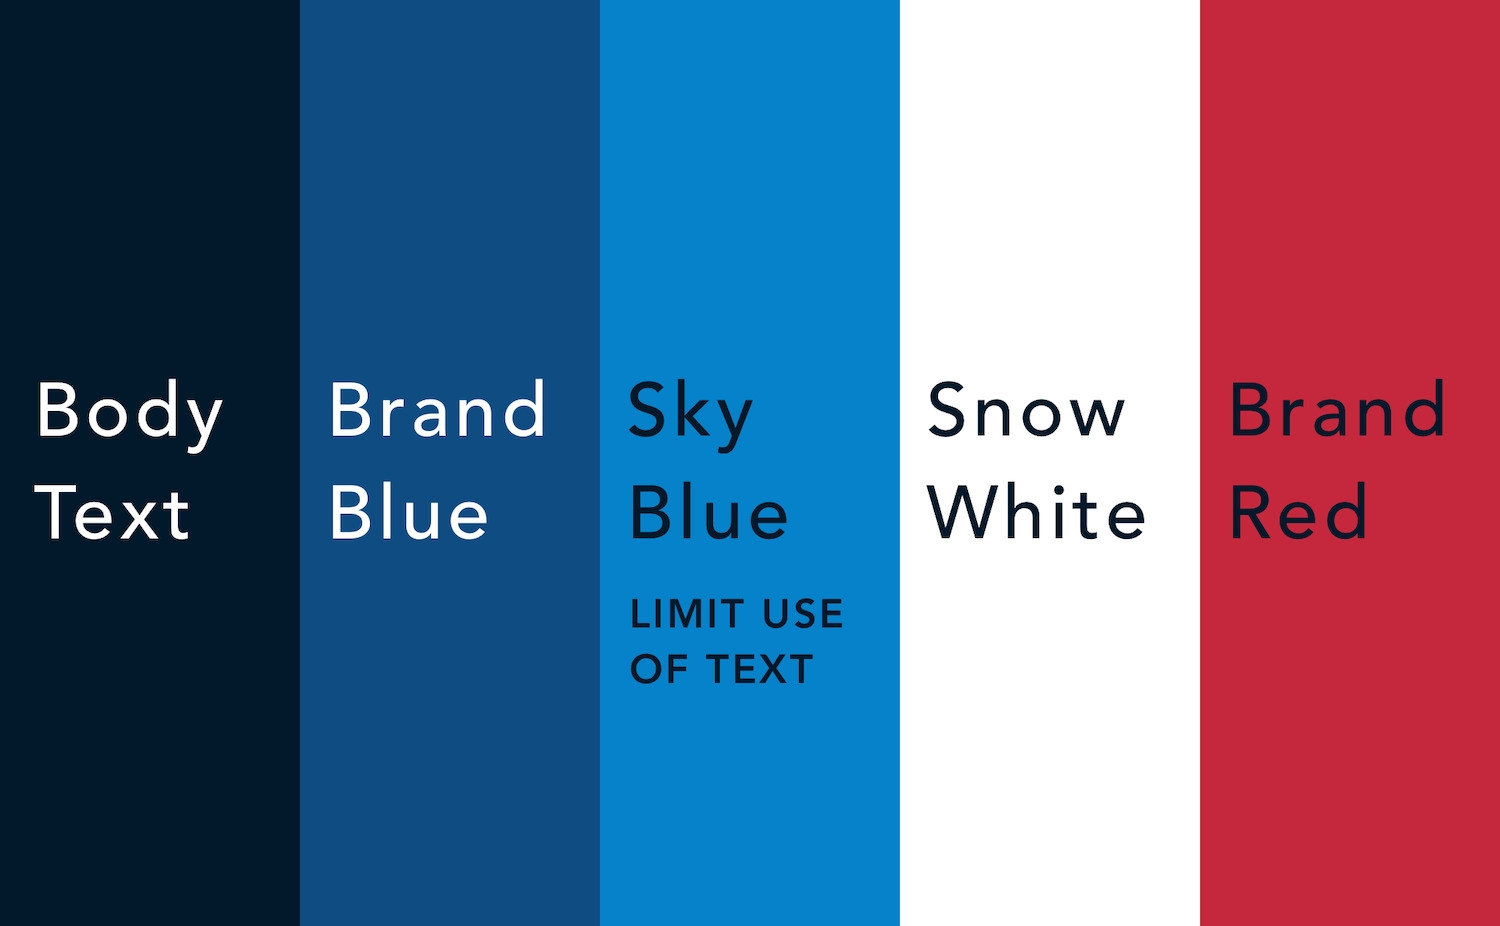 Brand identity colors need to be accessible.